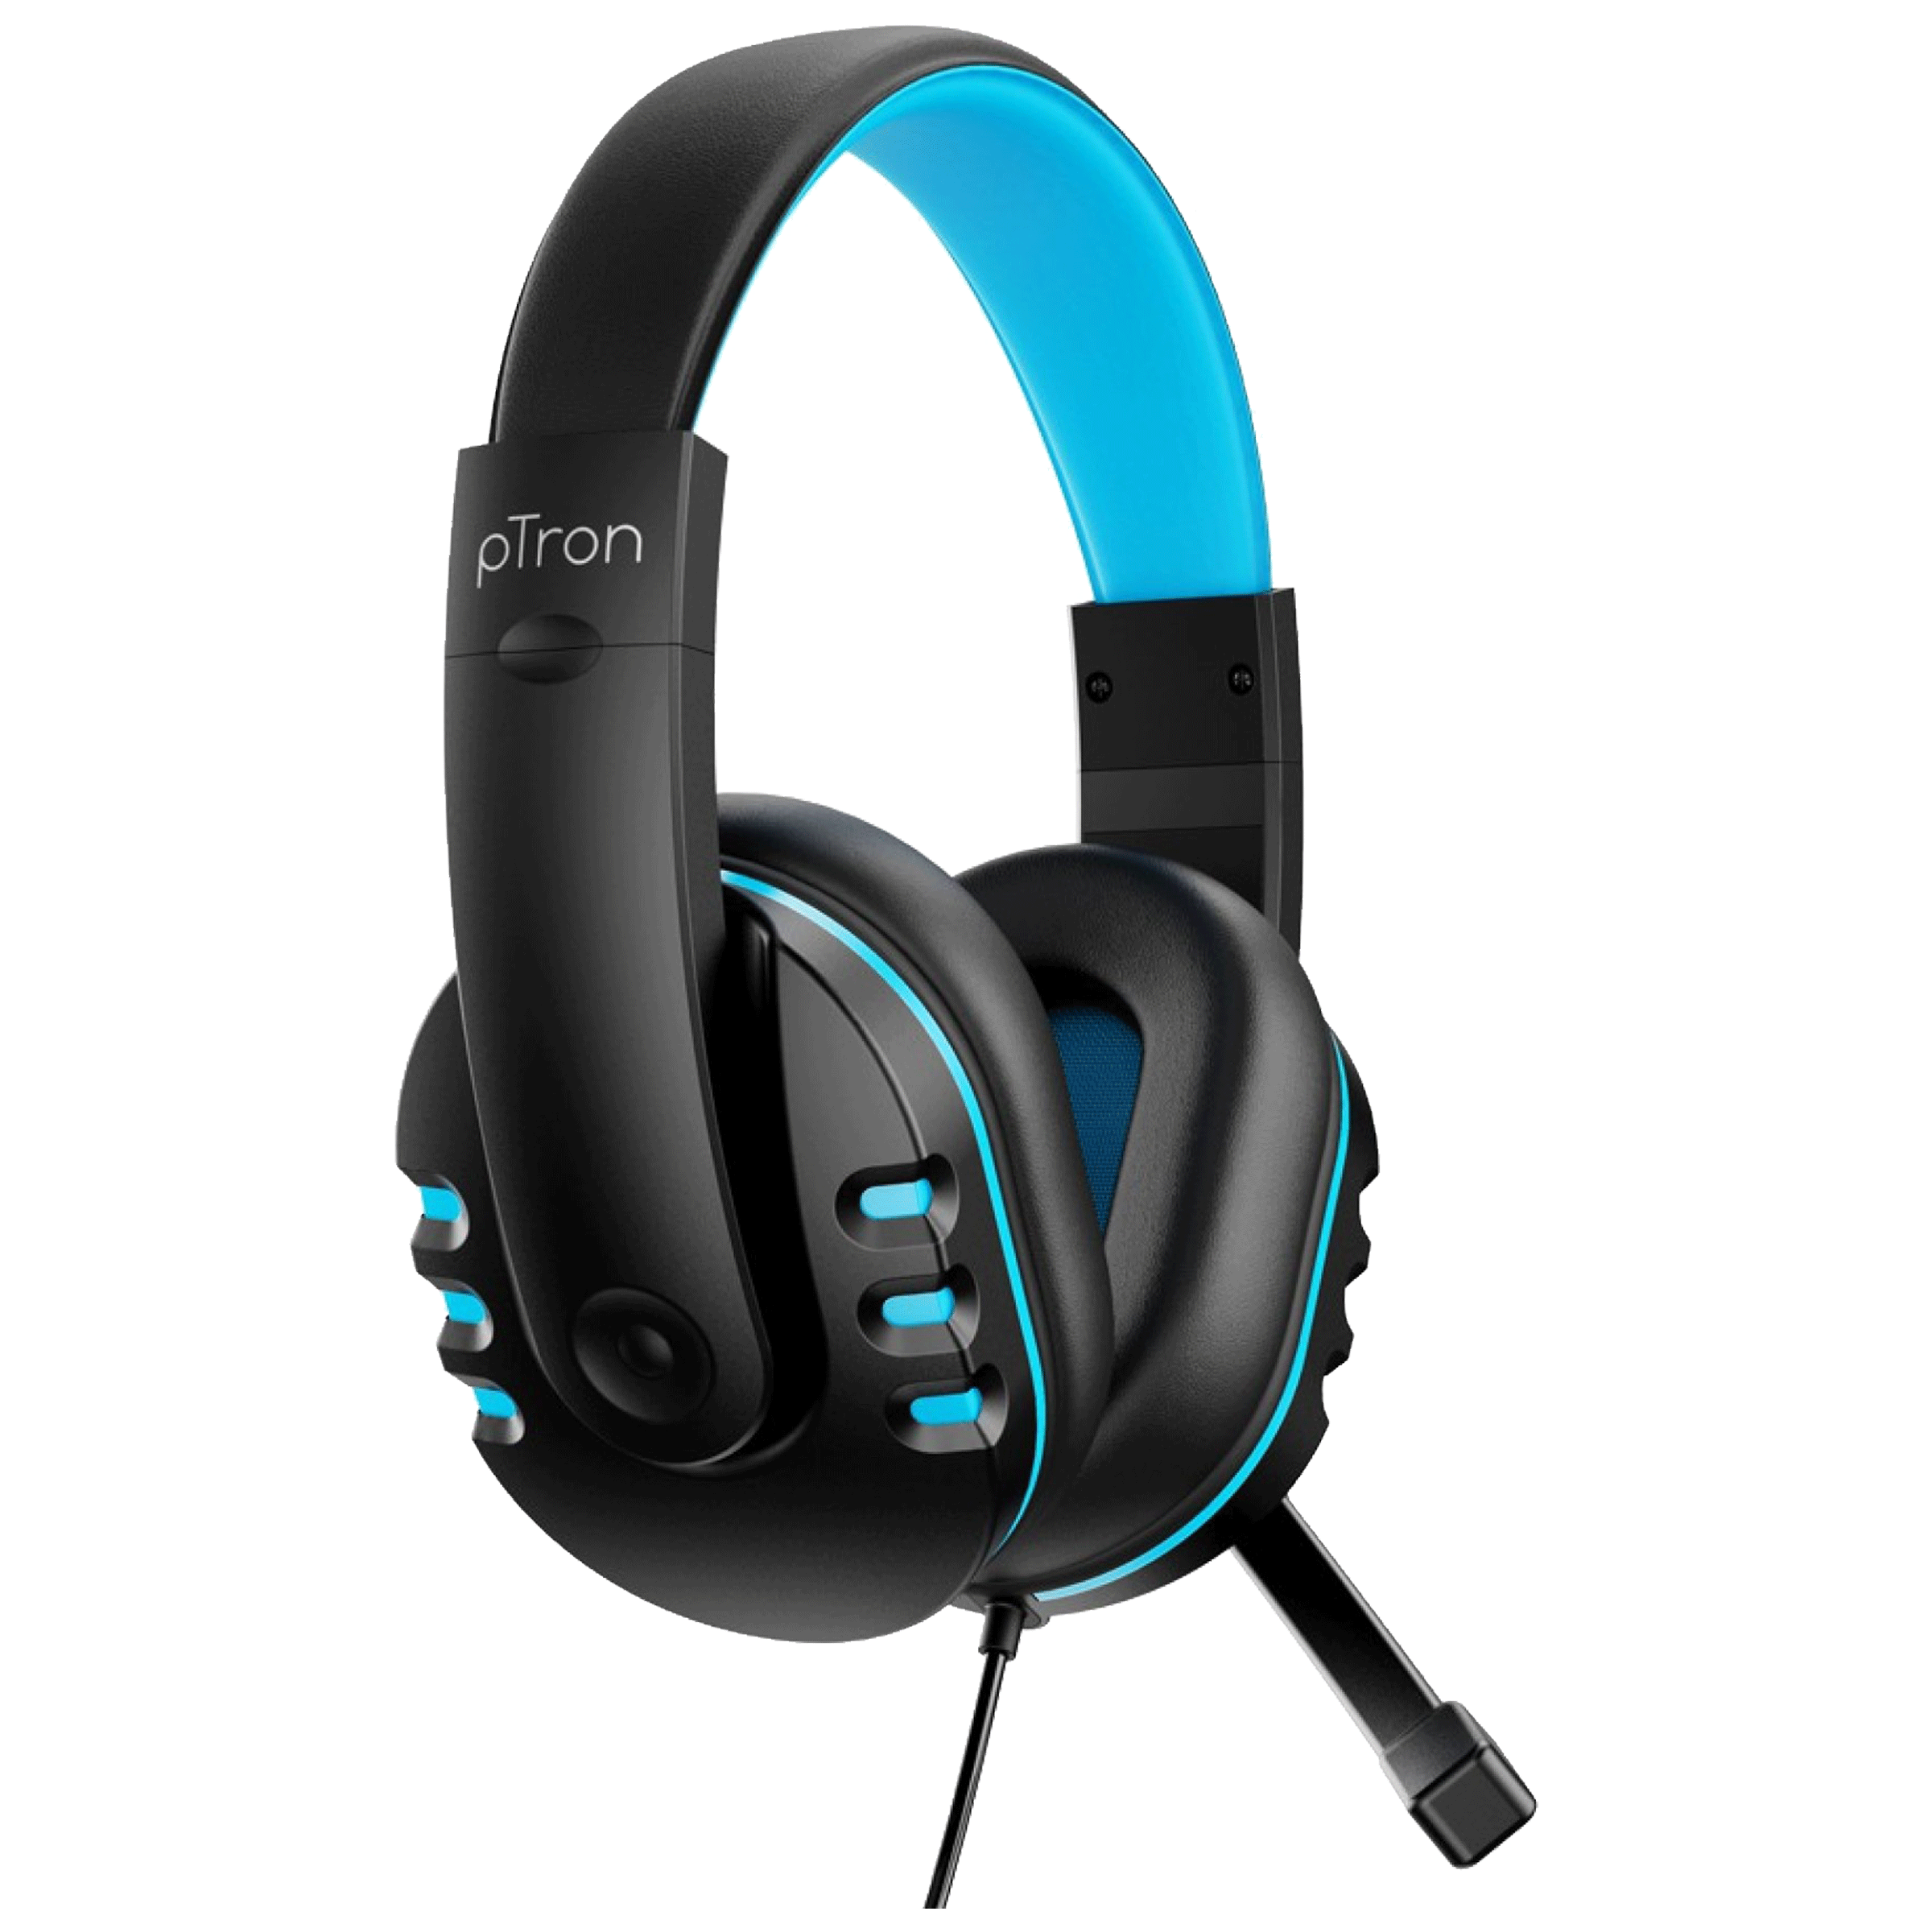 pTron Soundster Arcade Over-Ear Wired Gaming Headphone with Mic (40mm Dynamic Driver, 140317988, Black/Blue)_1